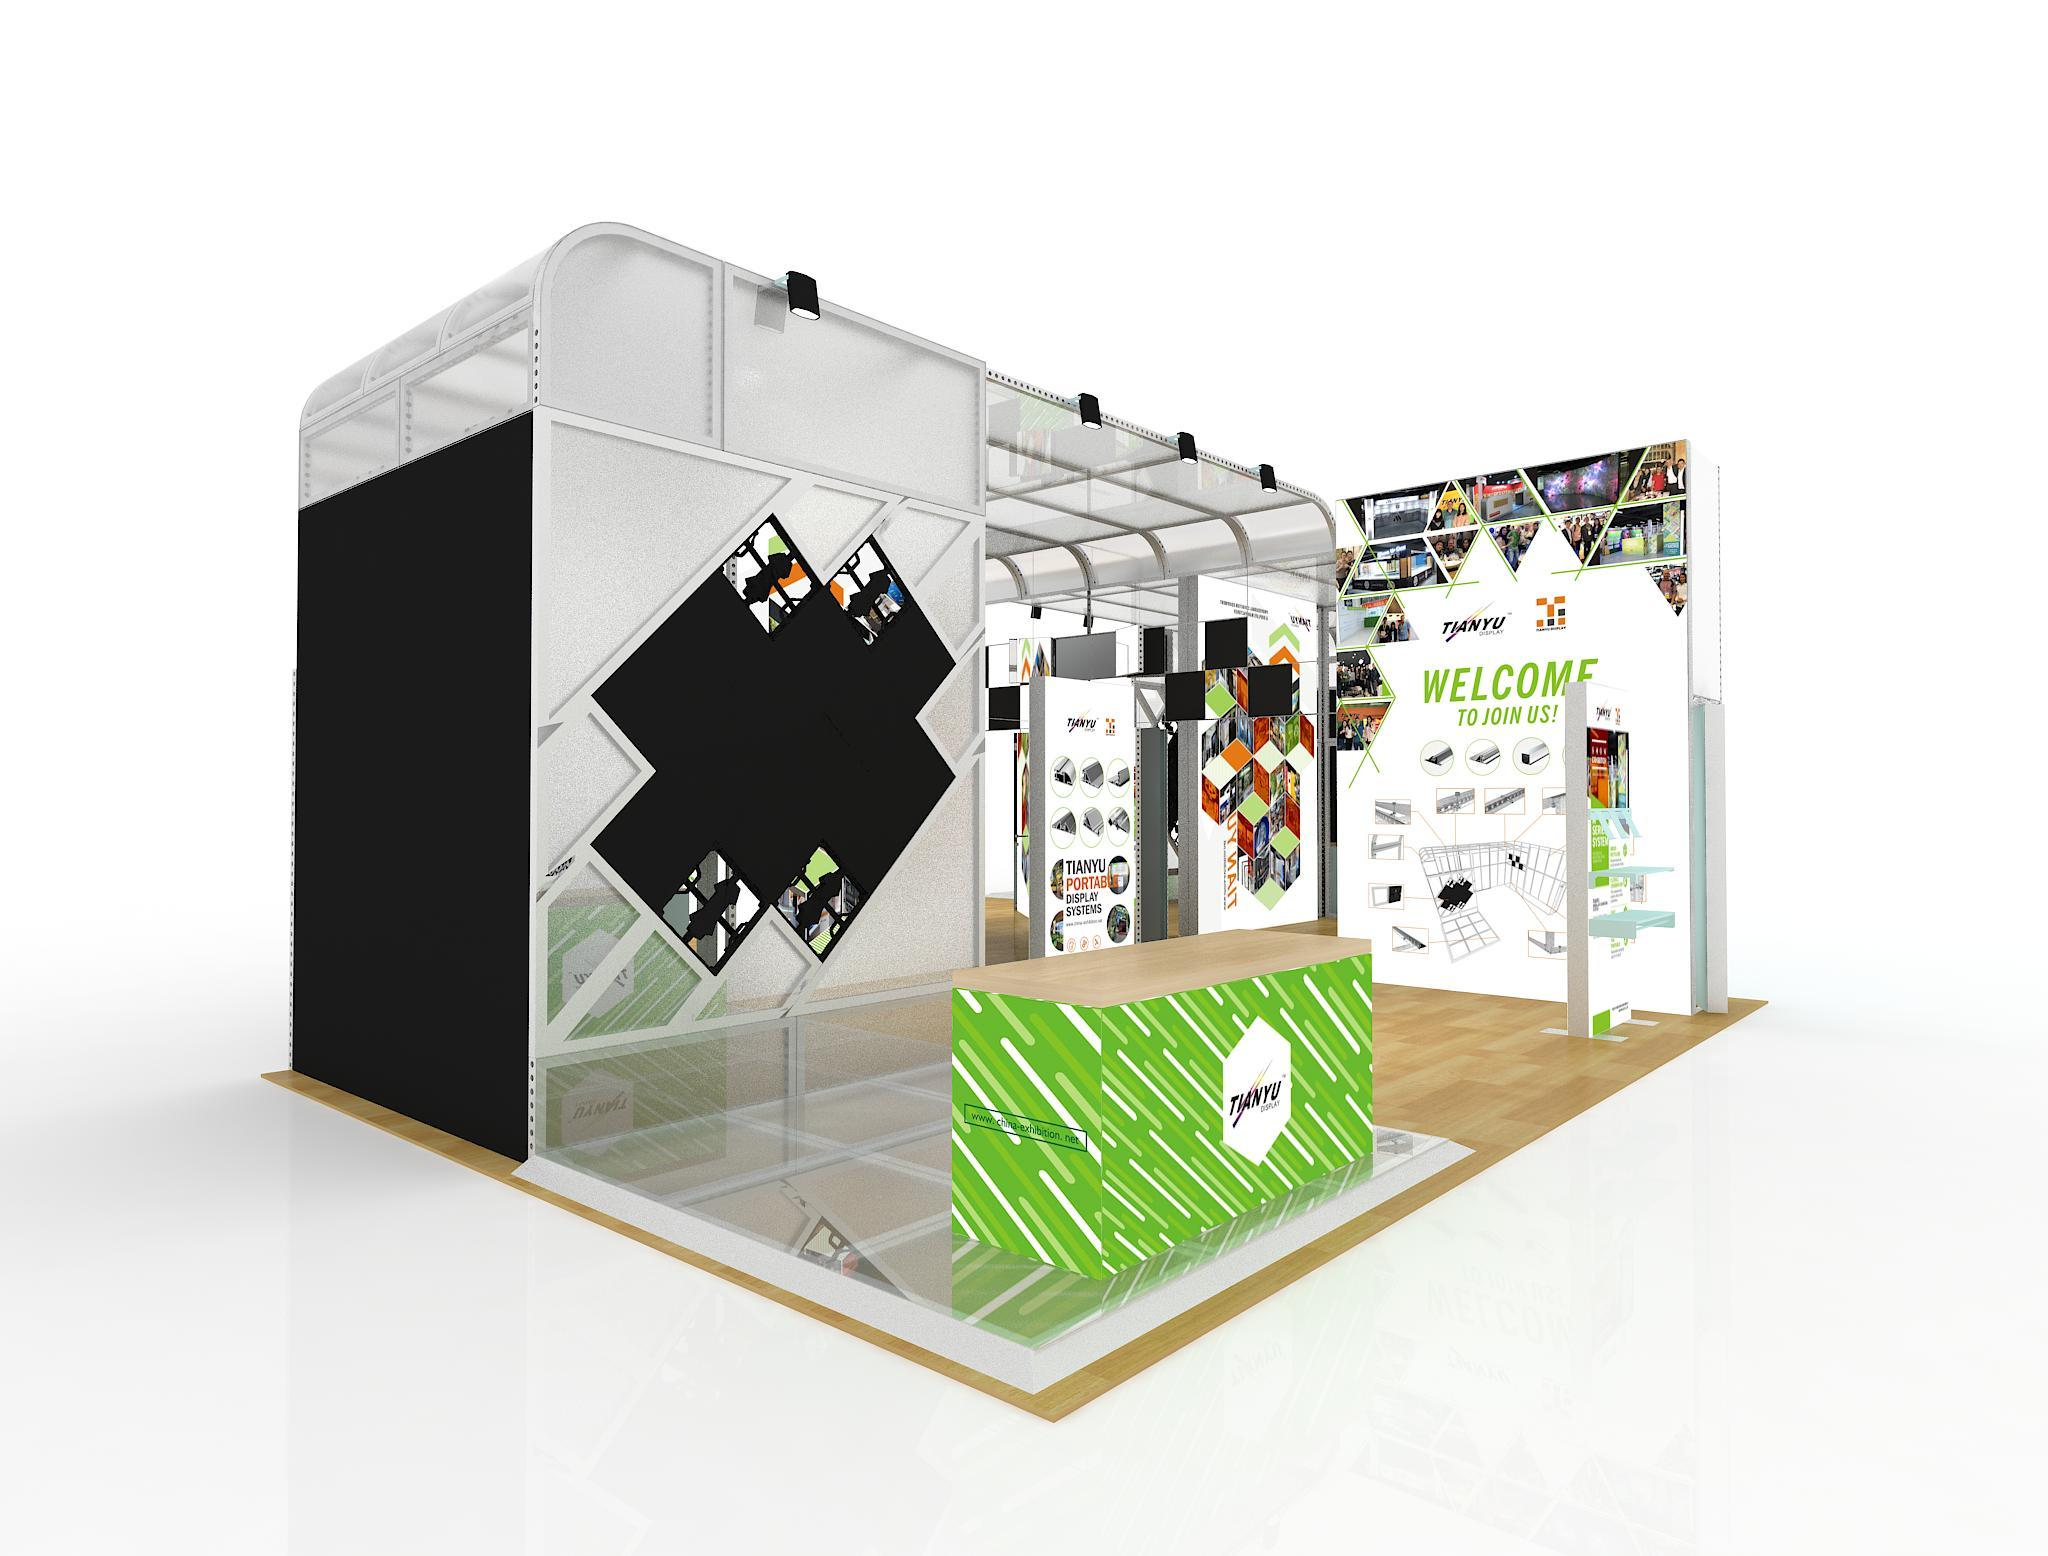 Expo Exhibition Stands Election : Mosa tiles exhibition stand inspiring trade show displays